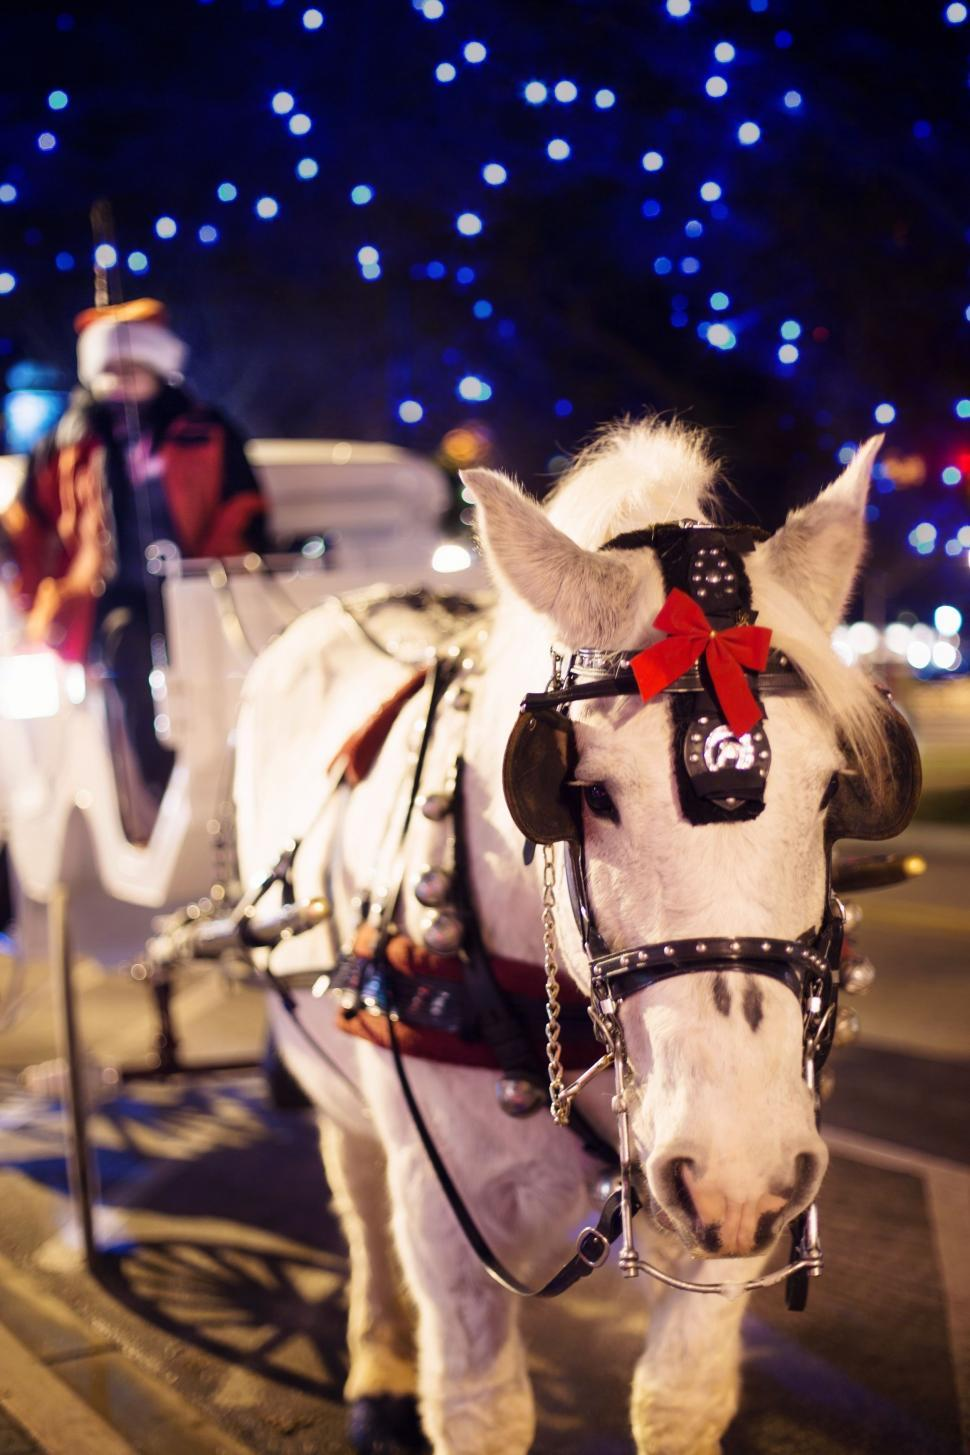 Download Free Stock Photo of Christmas horse carriage and bokeh lights